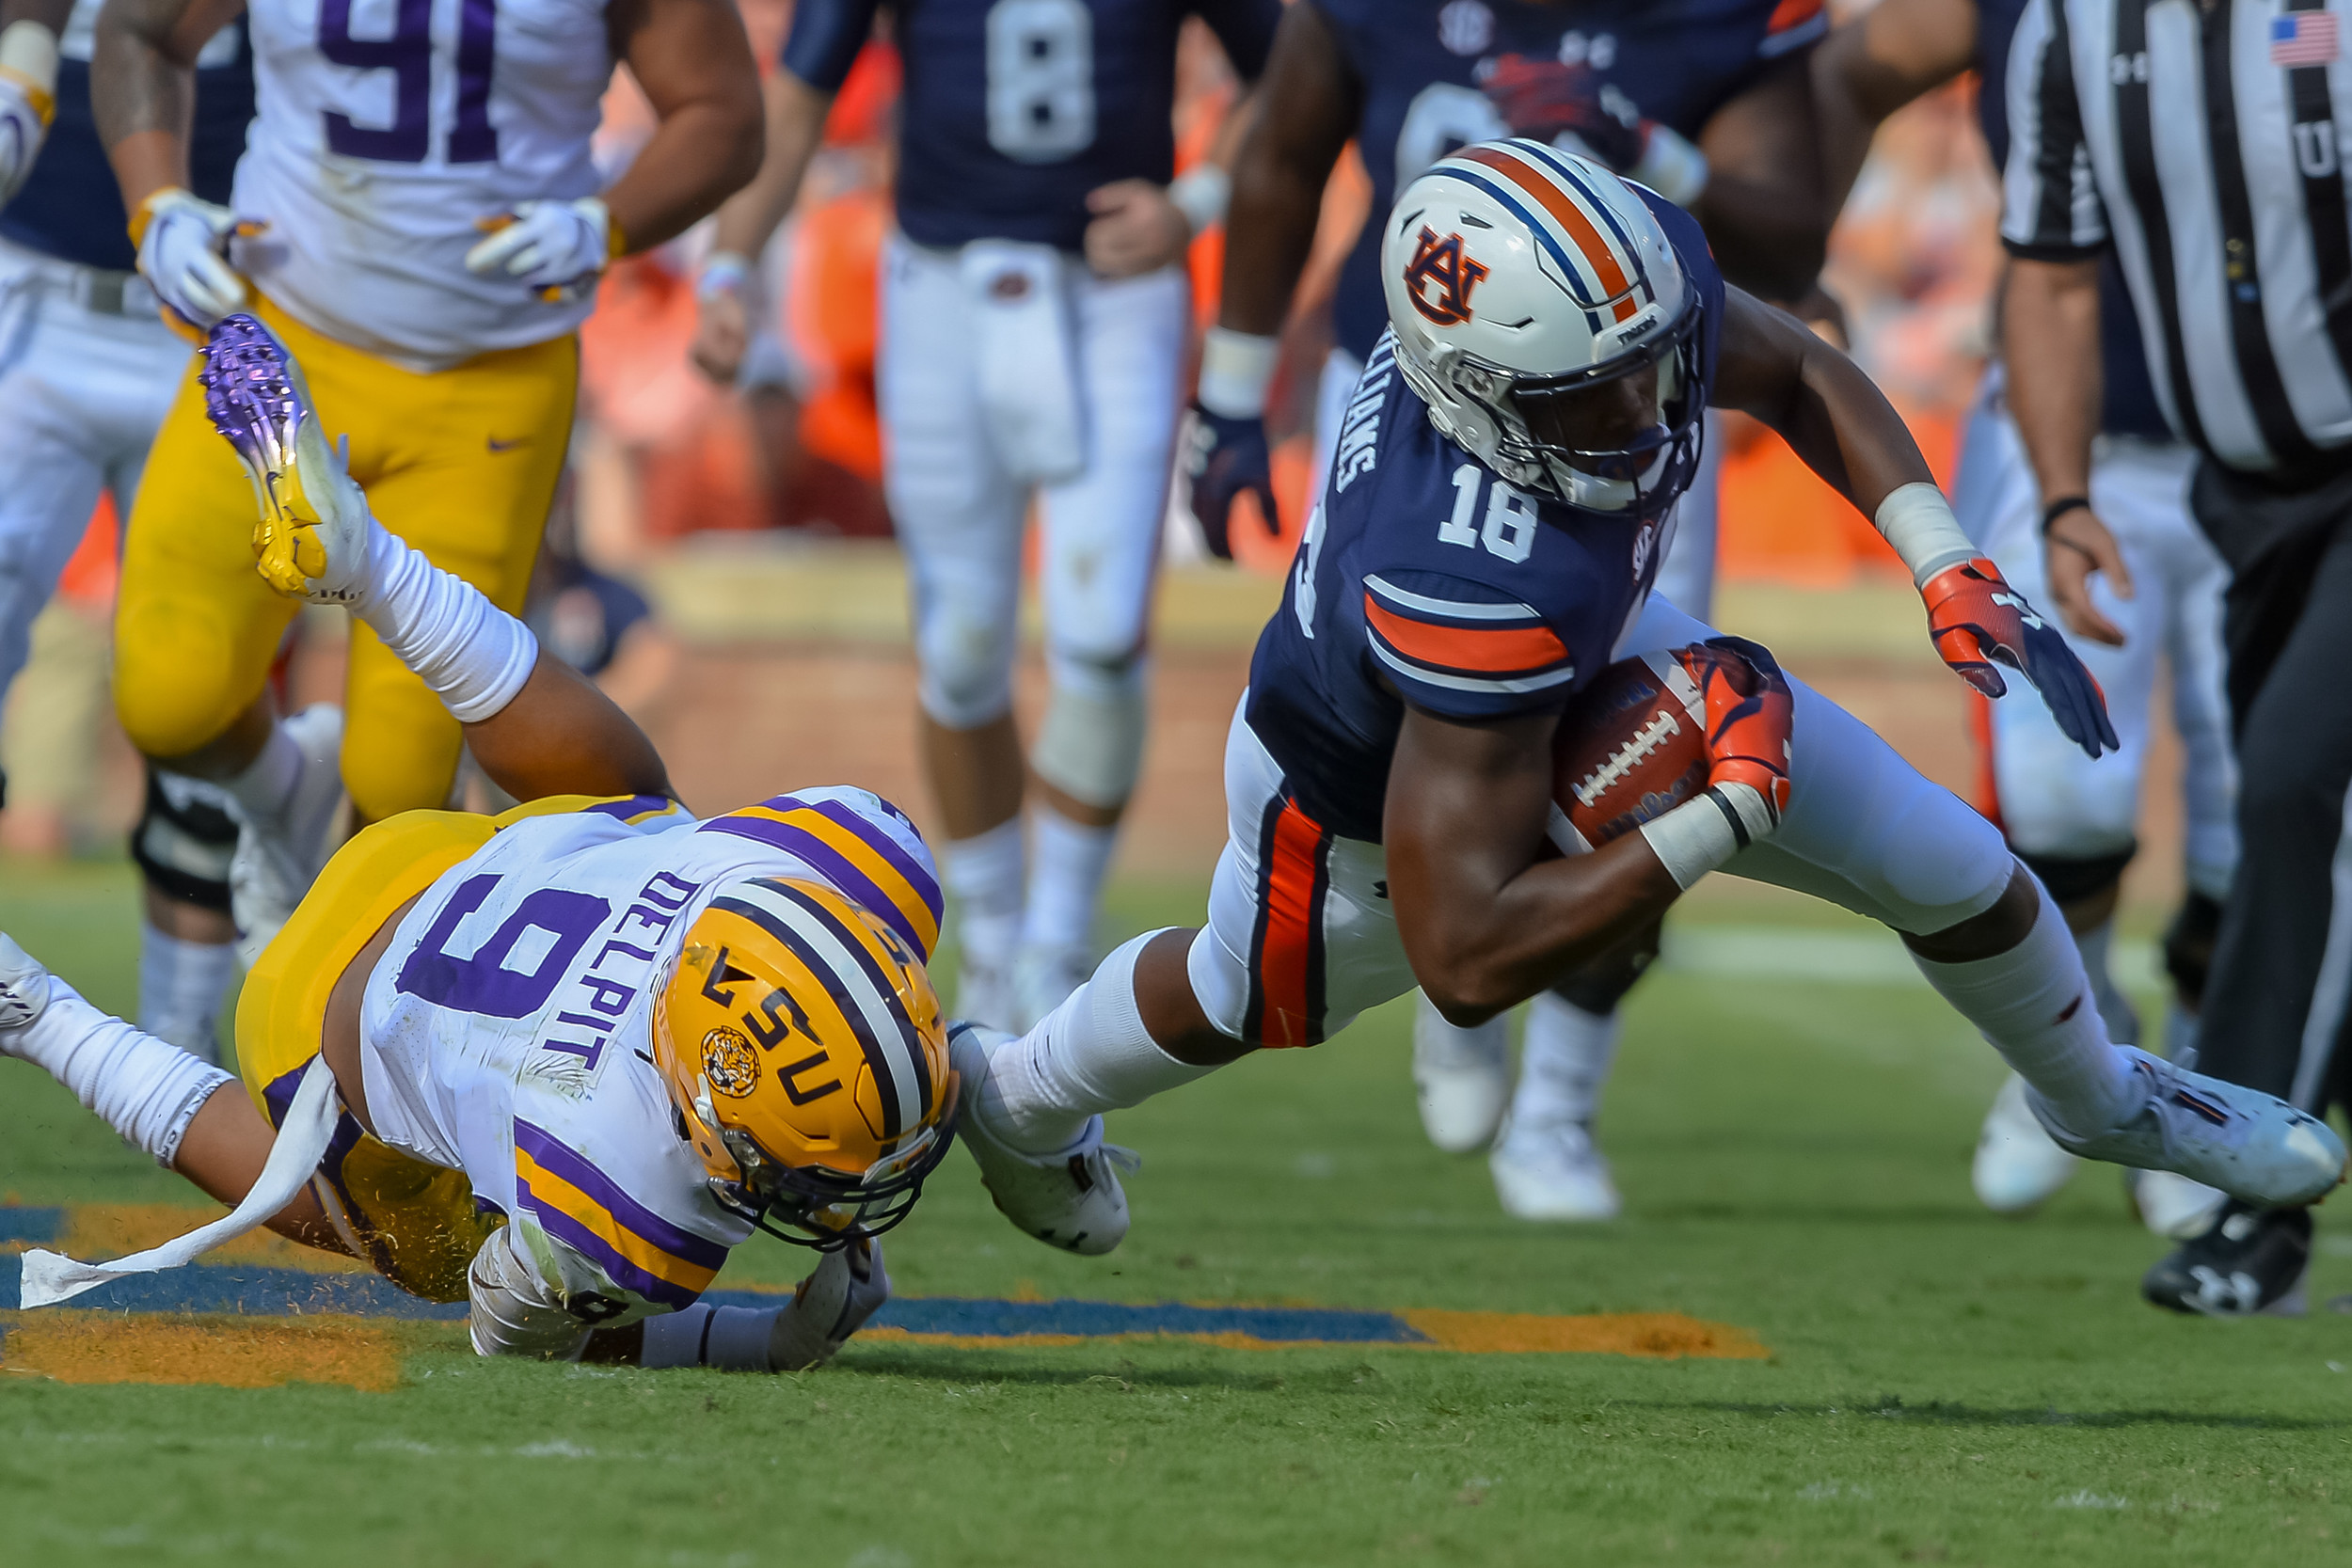 LSU Tigers safety Grant Delpit (9)trips up Auburn Tigers wide receiver Seth Williams (18) during the first half of Saturday's game, at Jordan Hare Stadium in Auburn. (Contributed by Jeff Johnsey)